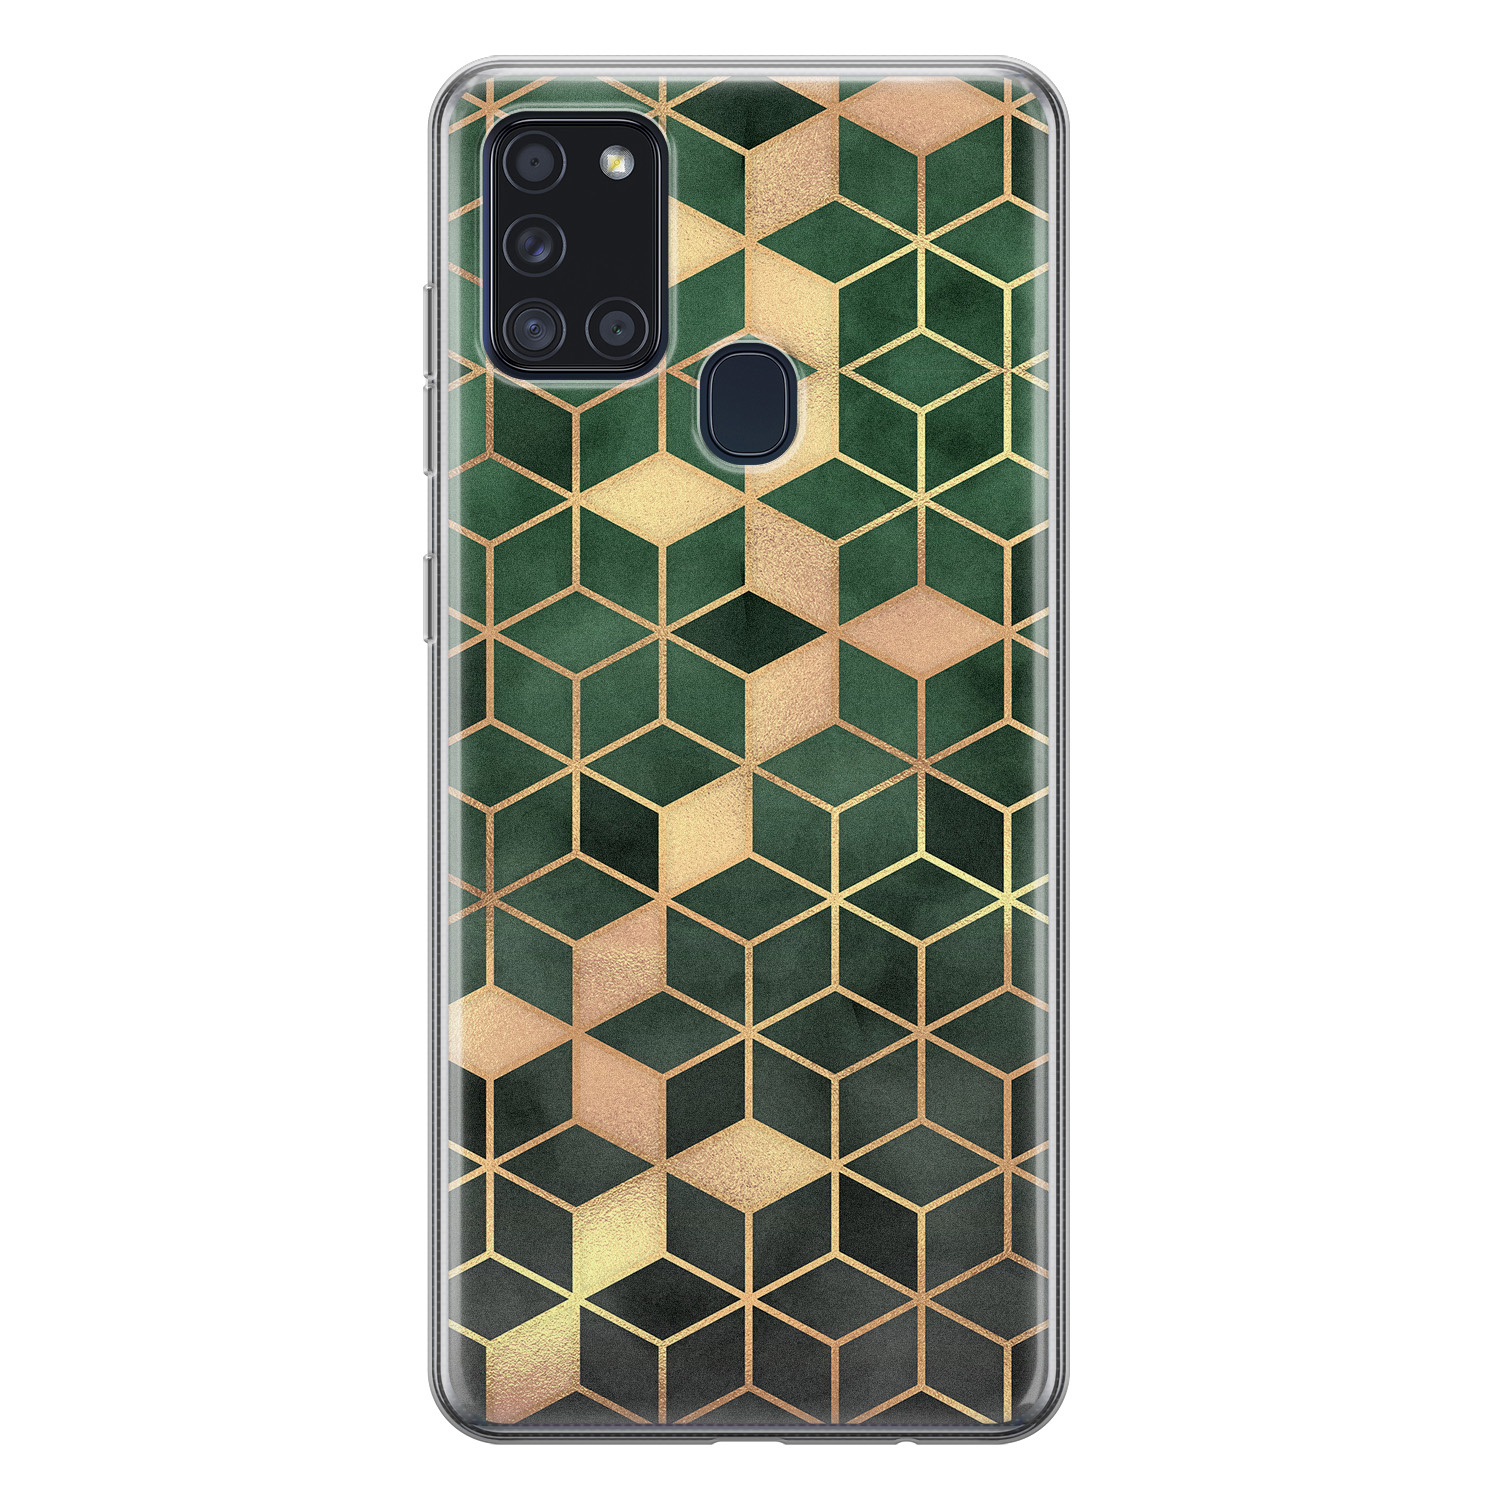 Samsung Galaxy A21s siliconen hoesje - Green cubes